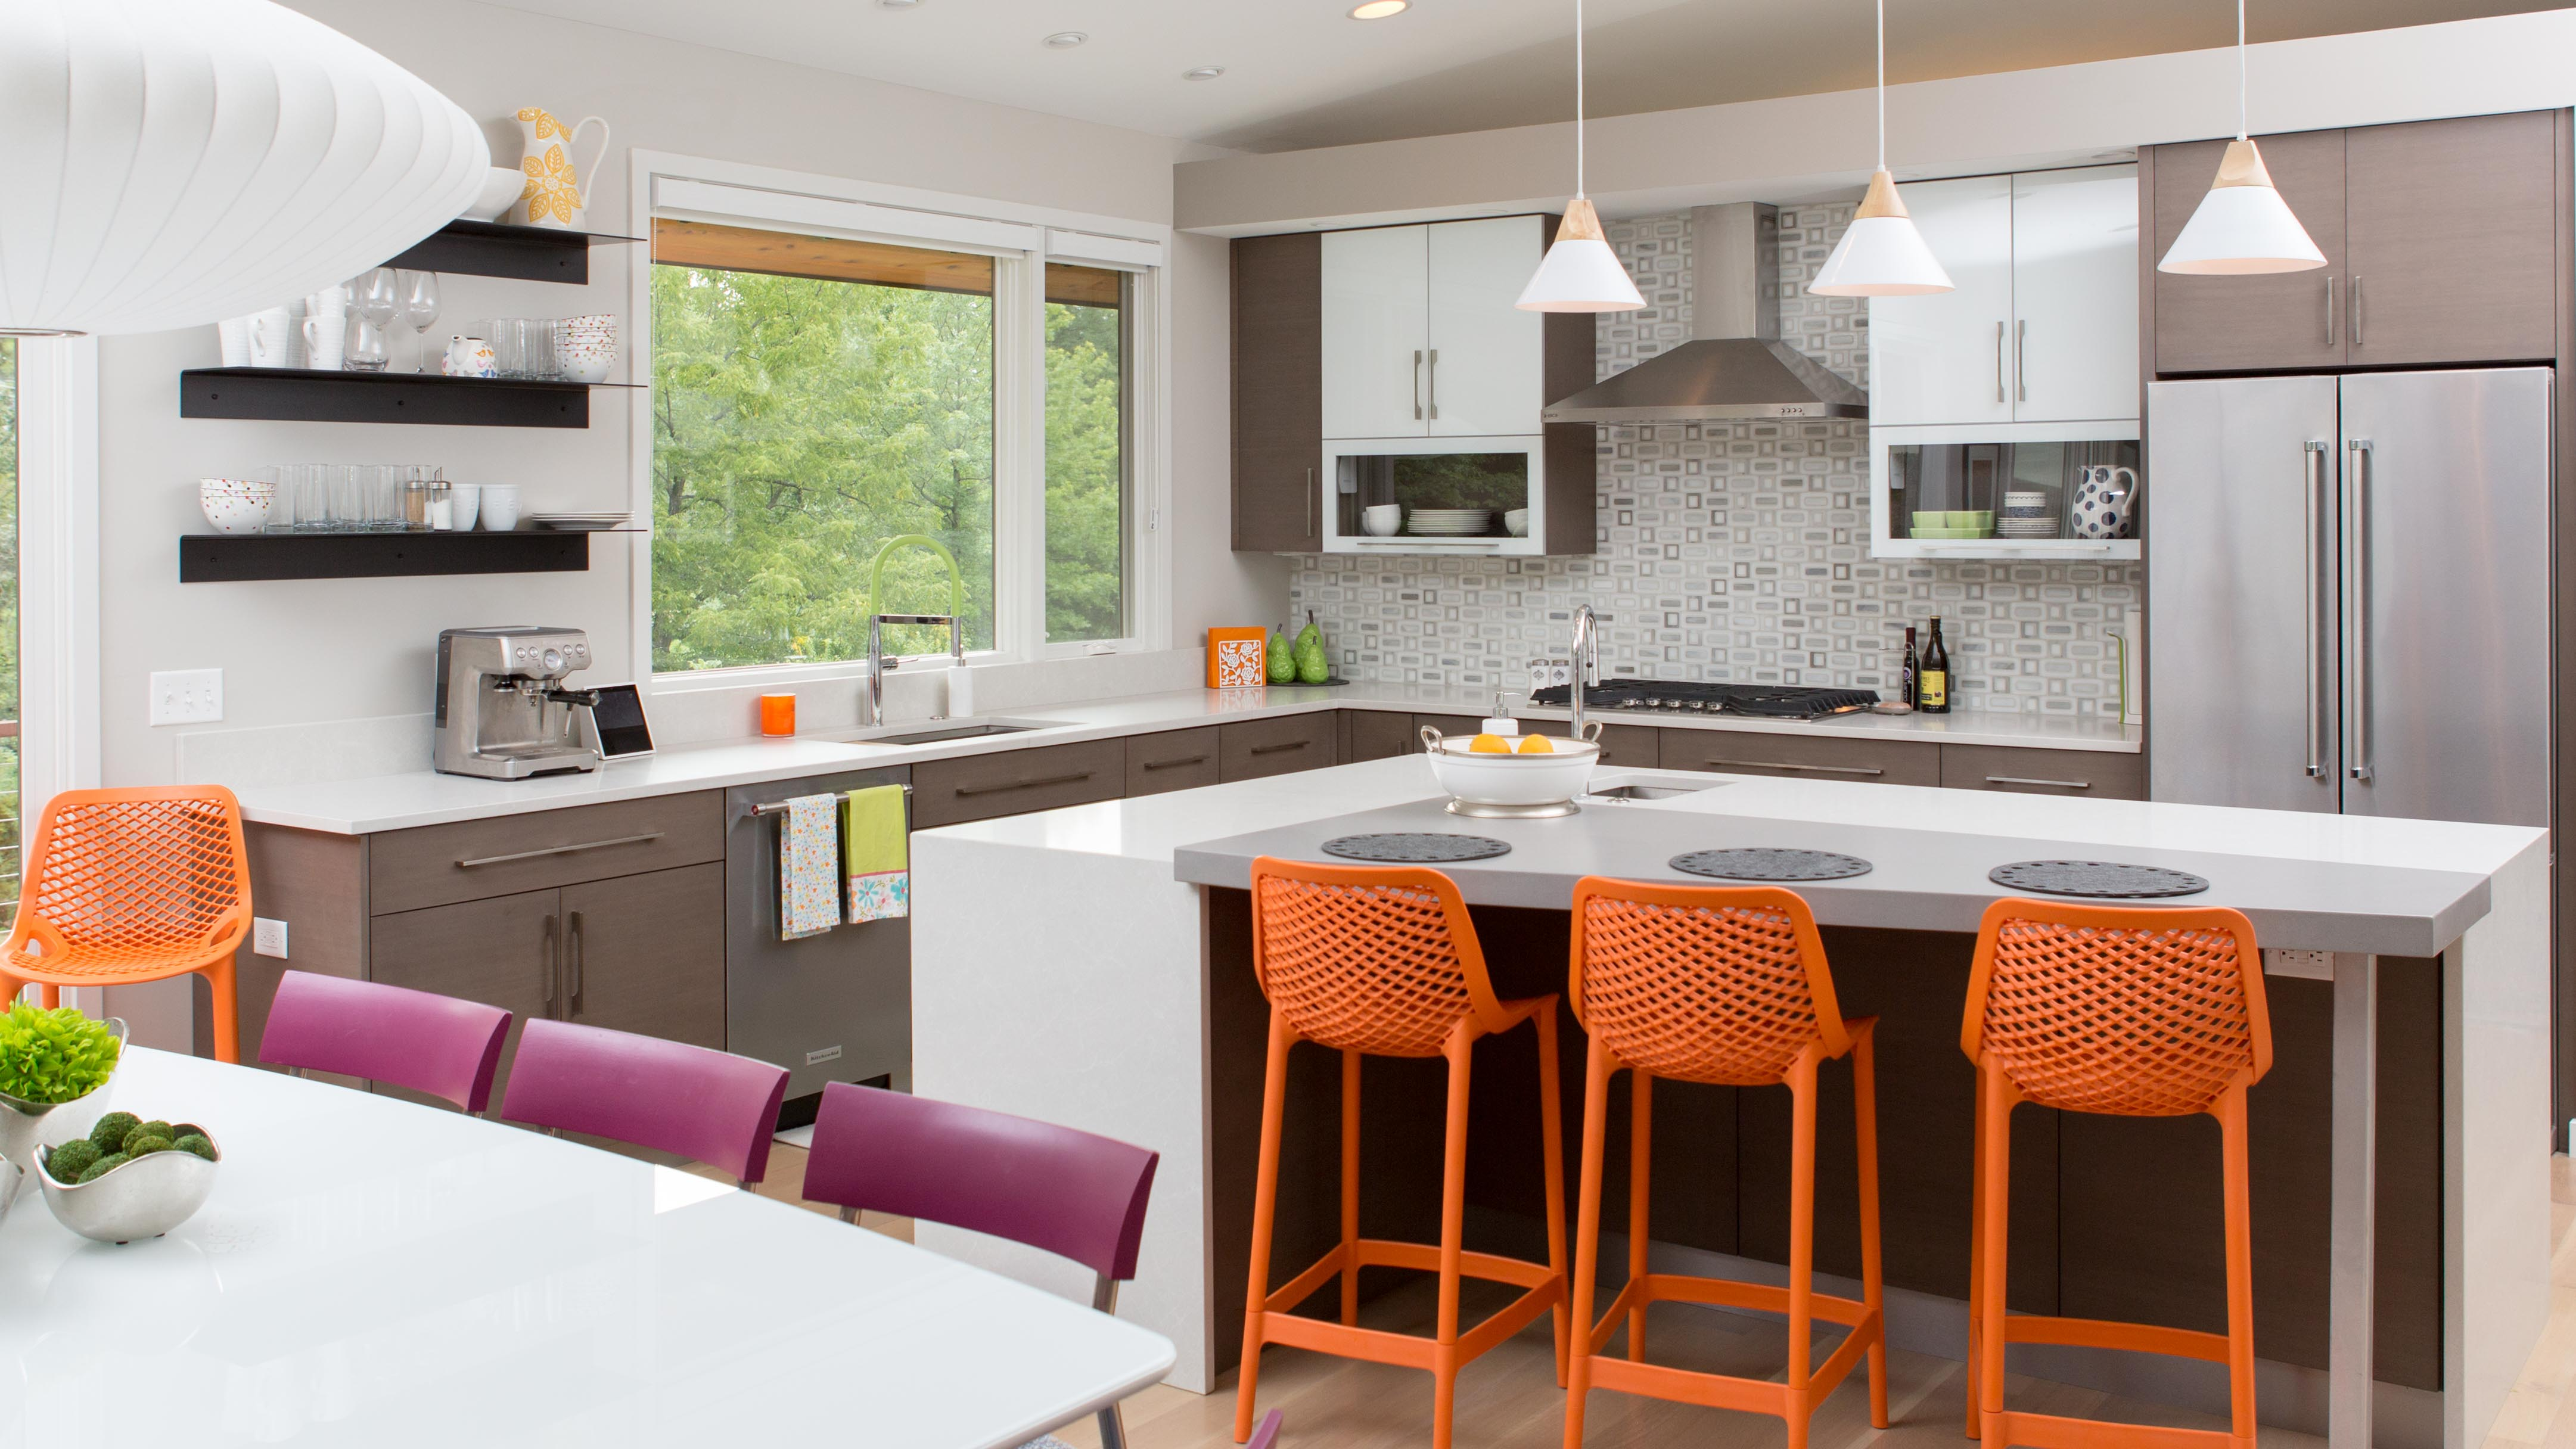 2019 Kitchen of the Year